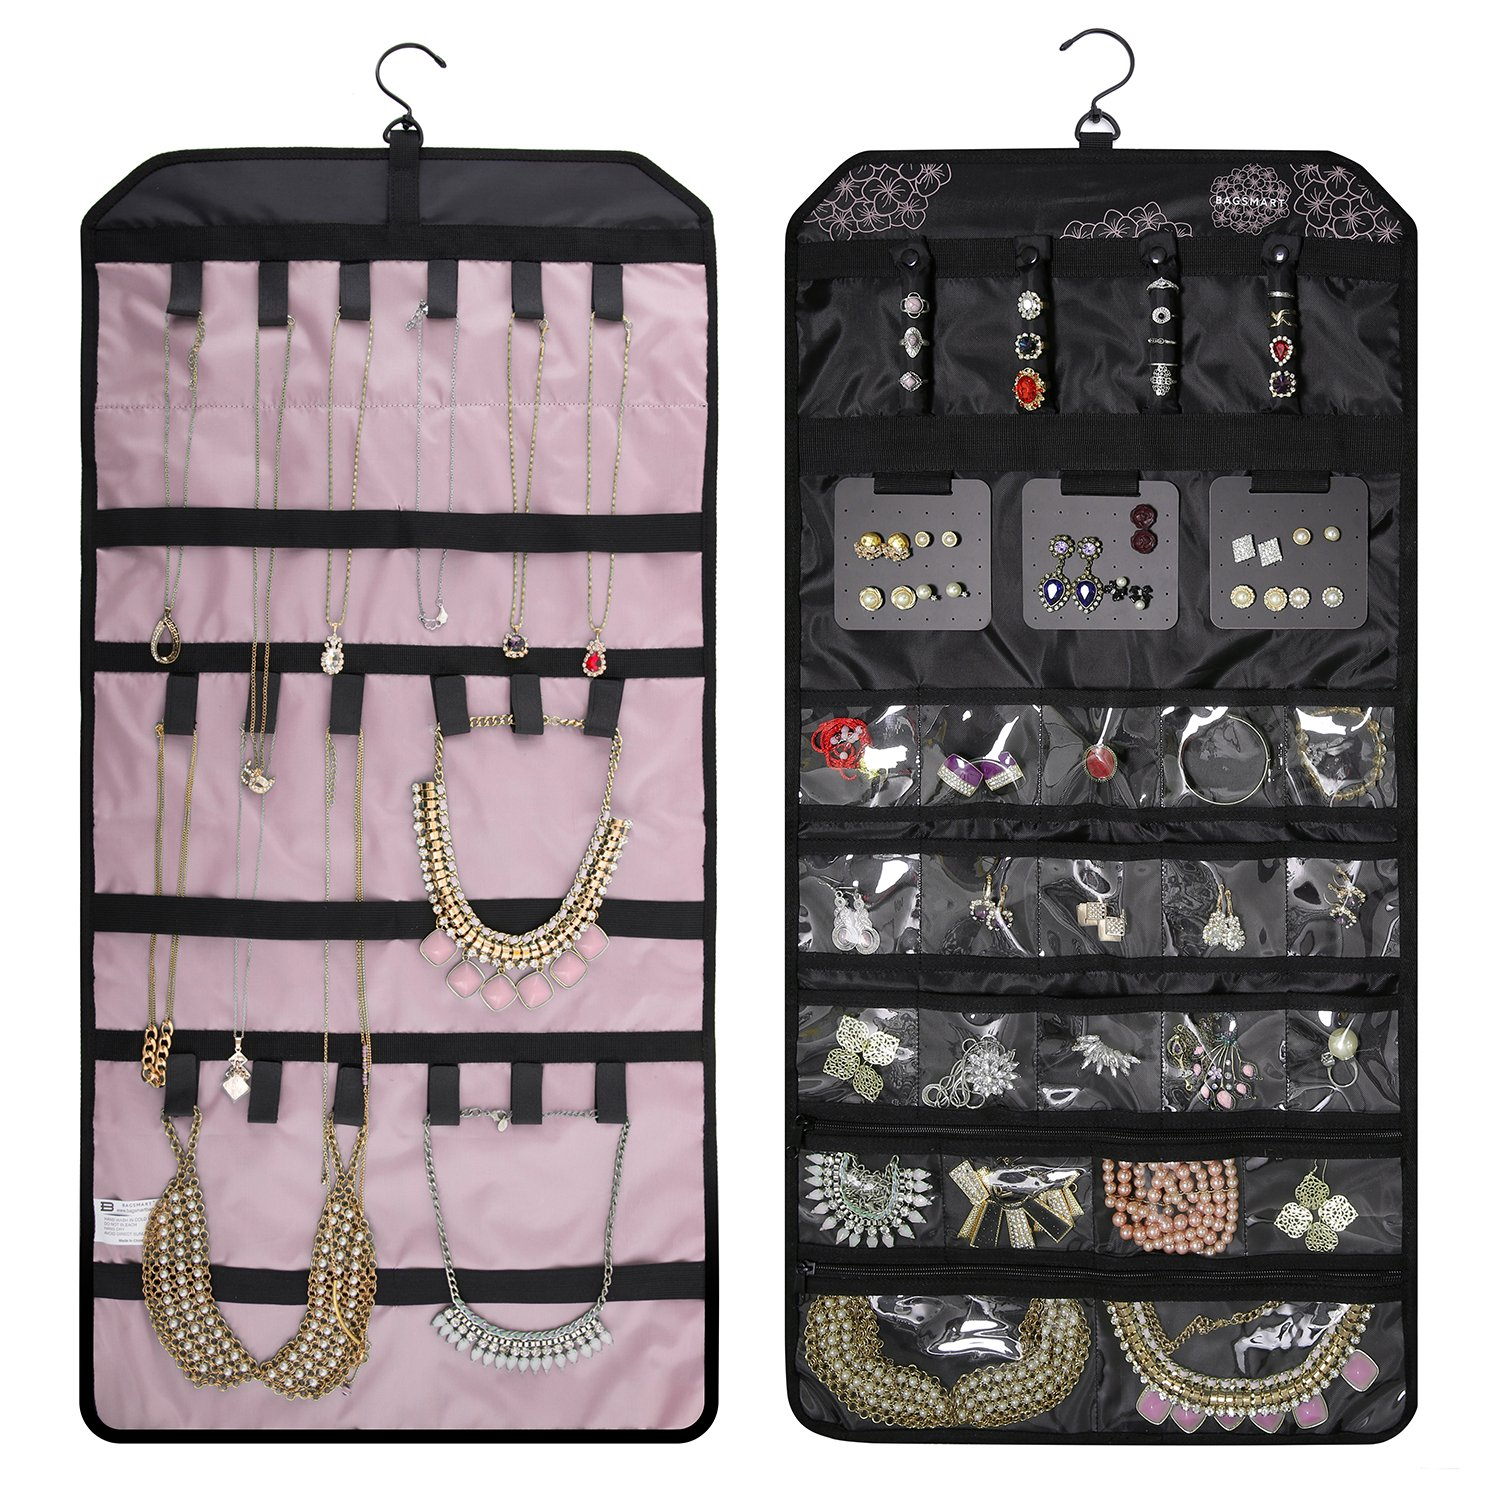 BAGSMART Double-sided Hanging Jewelry Organizer Roll up Bag for Earrings Rings Necklaces